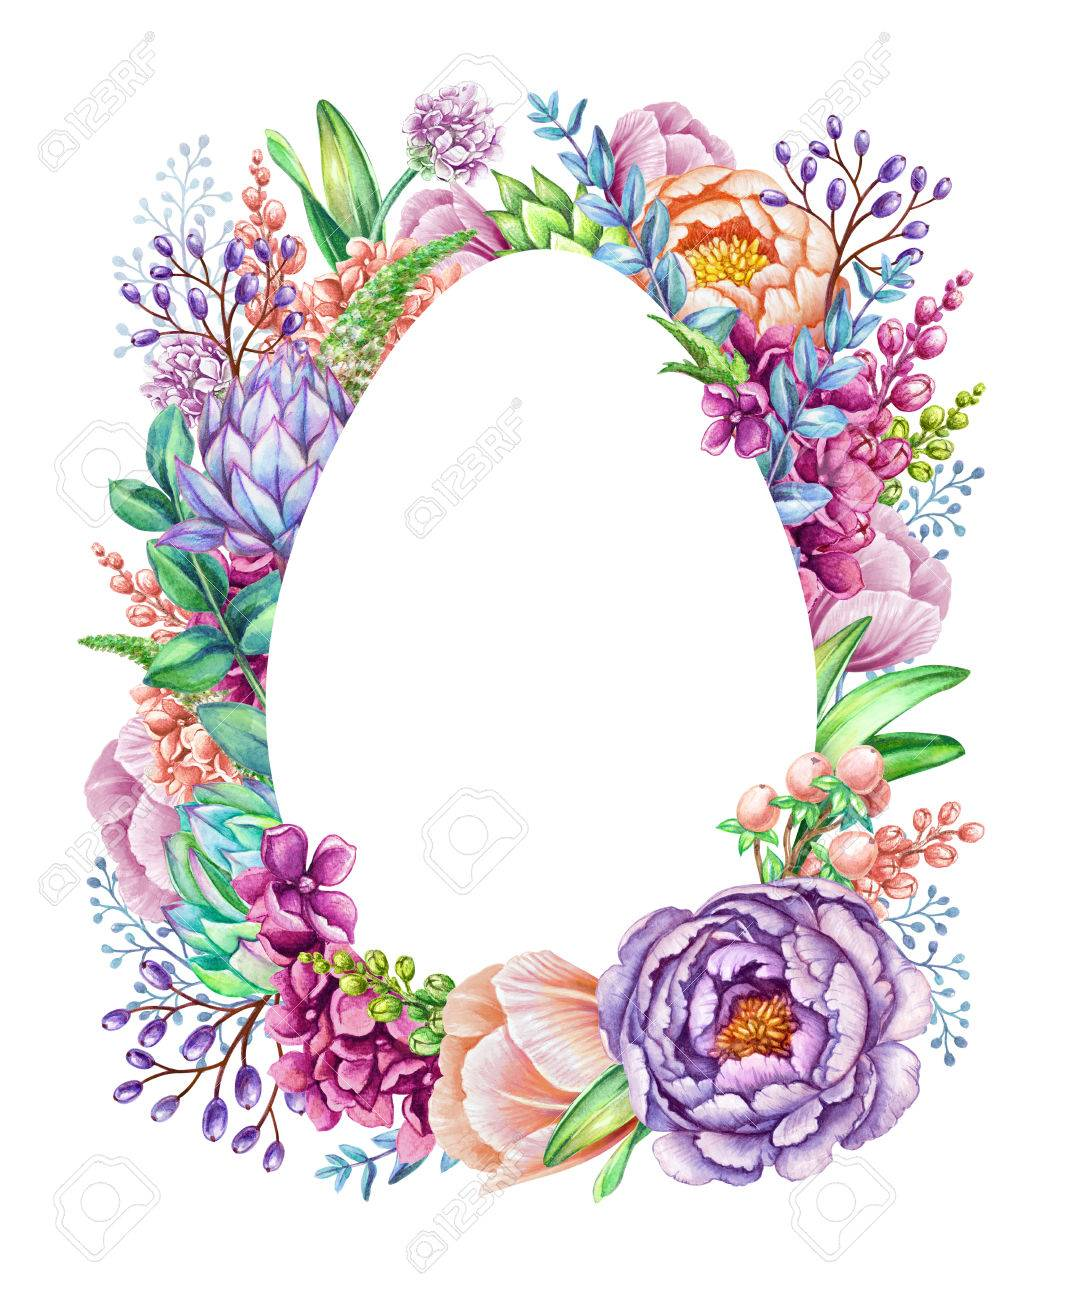 Watercolor Illustration, Floral Background, Wild Flowers, Easter